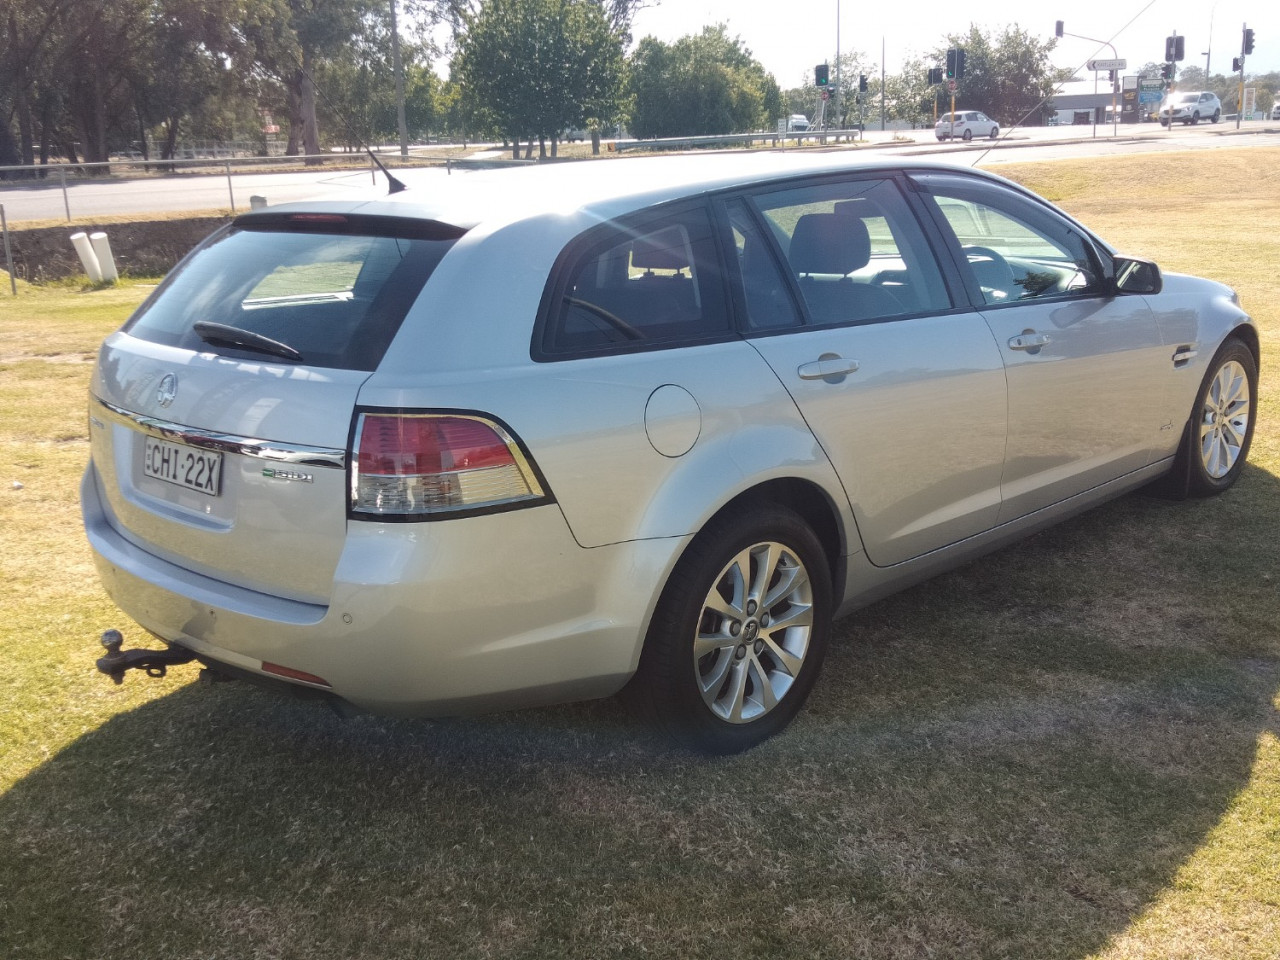 2012 Holden Berlina VE II MY12 Wagon Image 5